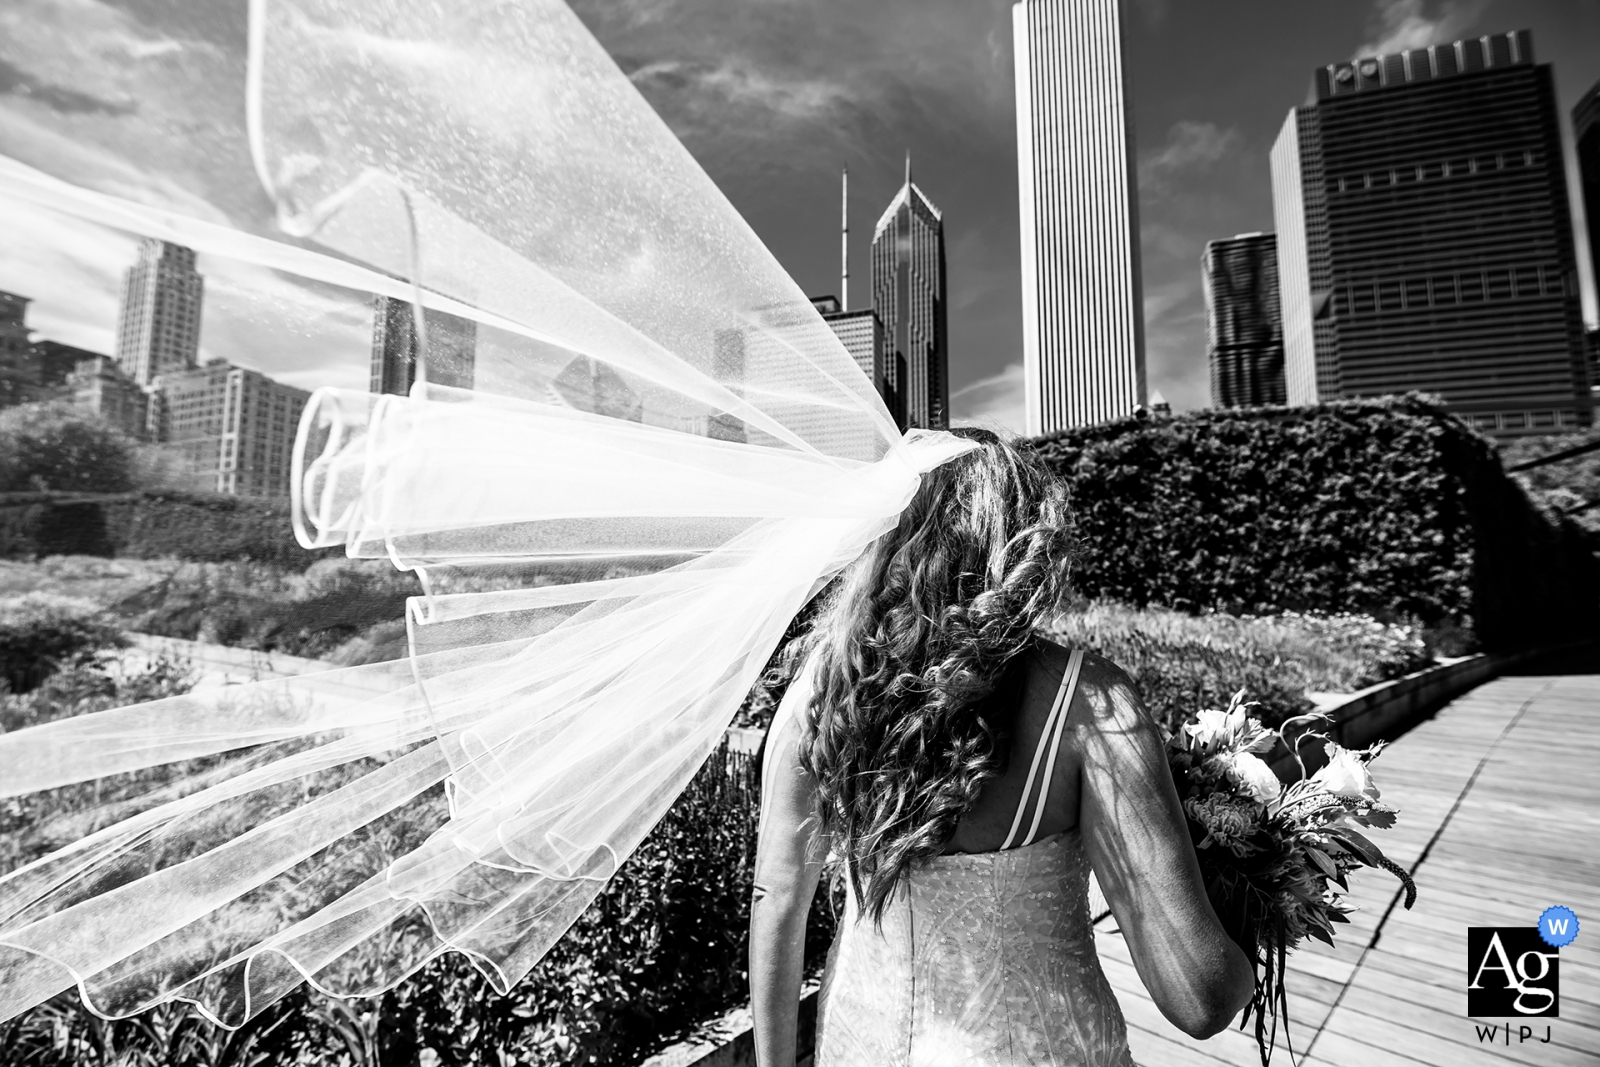 Milan Lazic is an artistic wedding photographer for Illinois